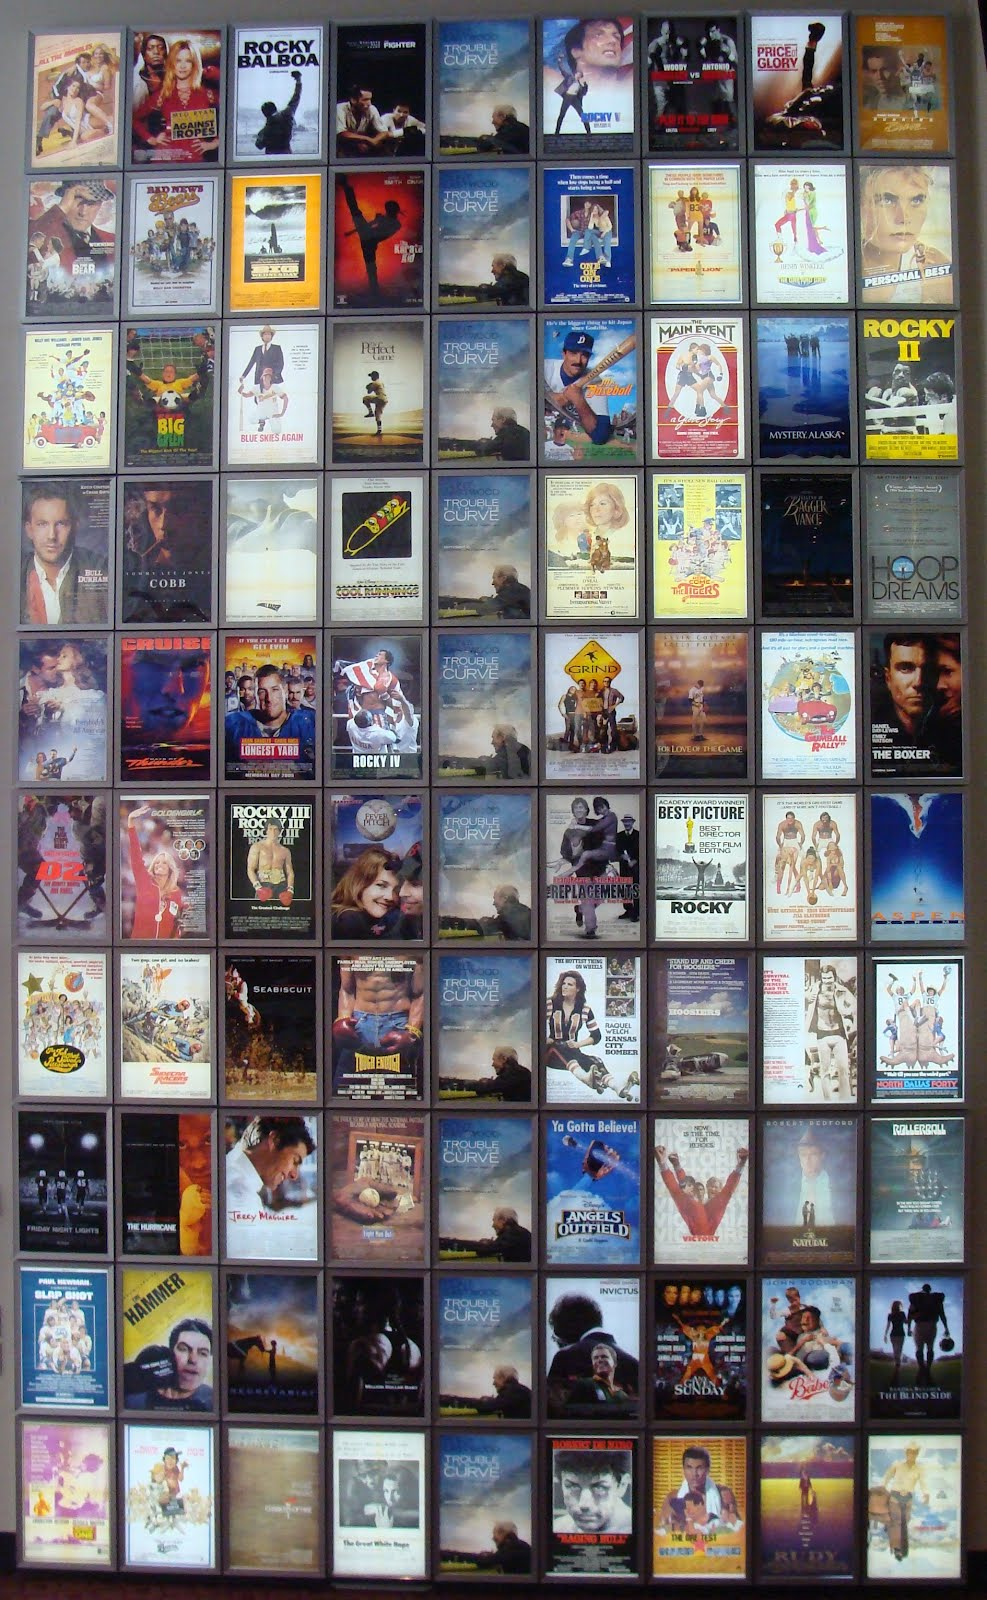 moviewall movie posters - photo #19